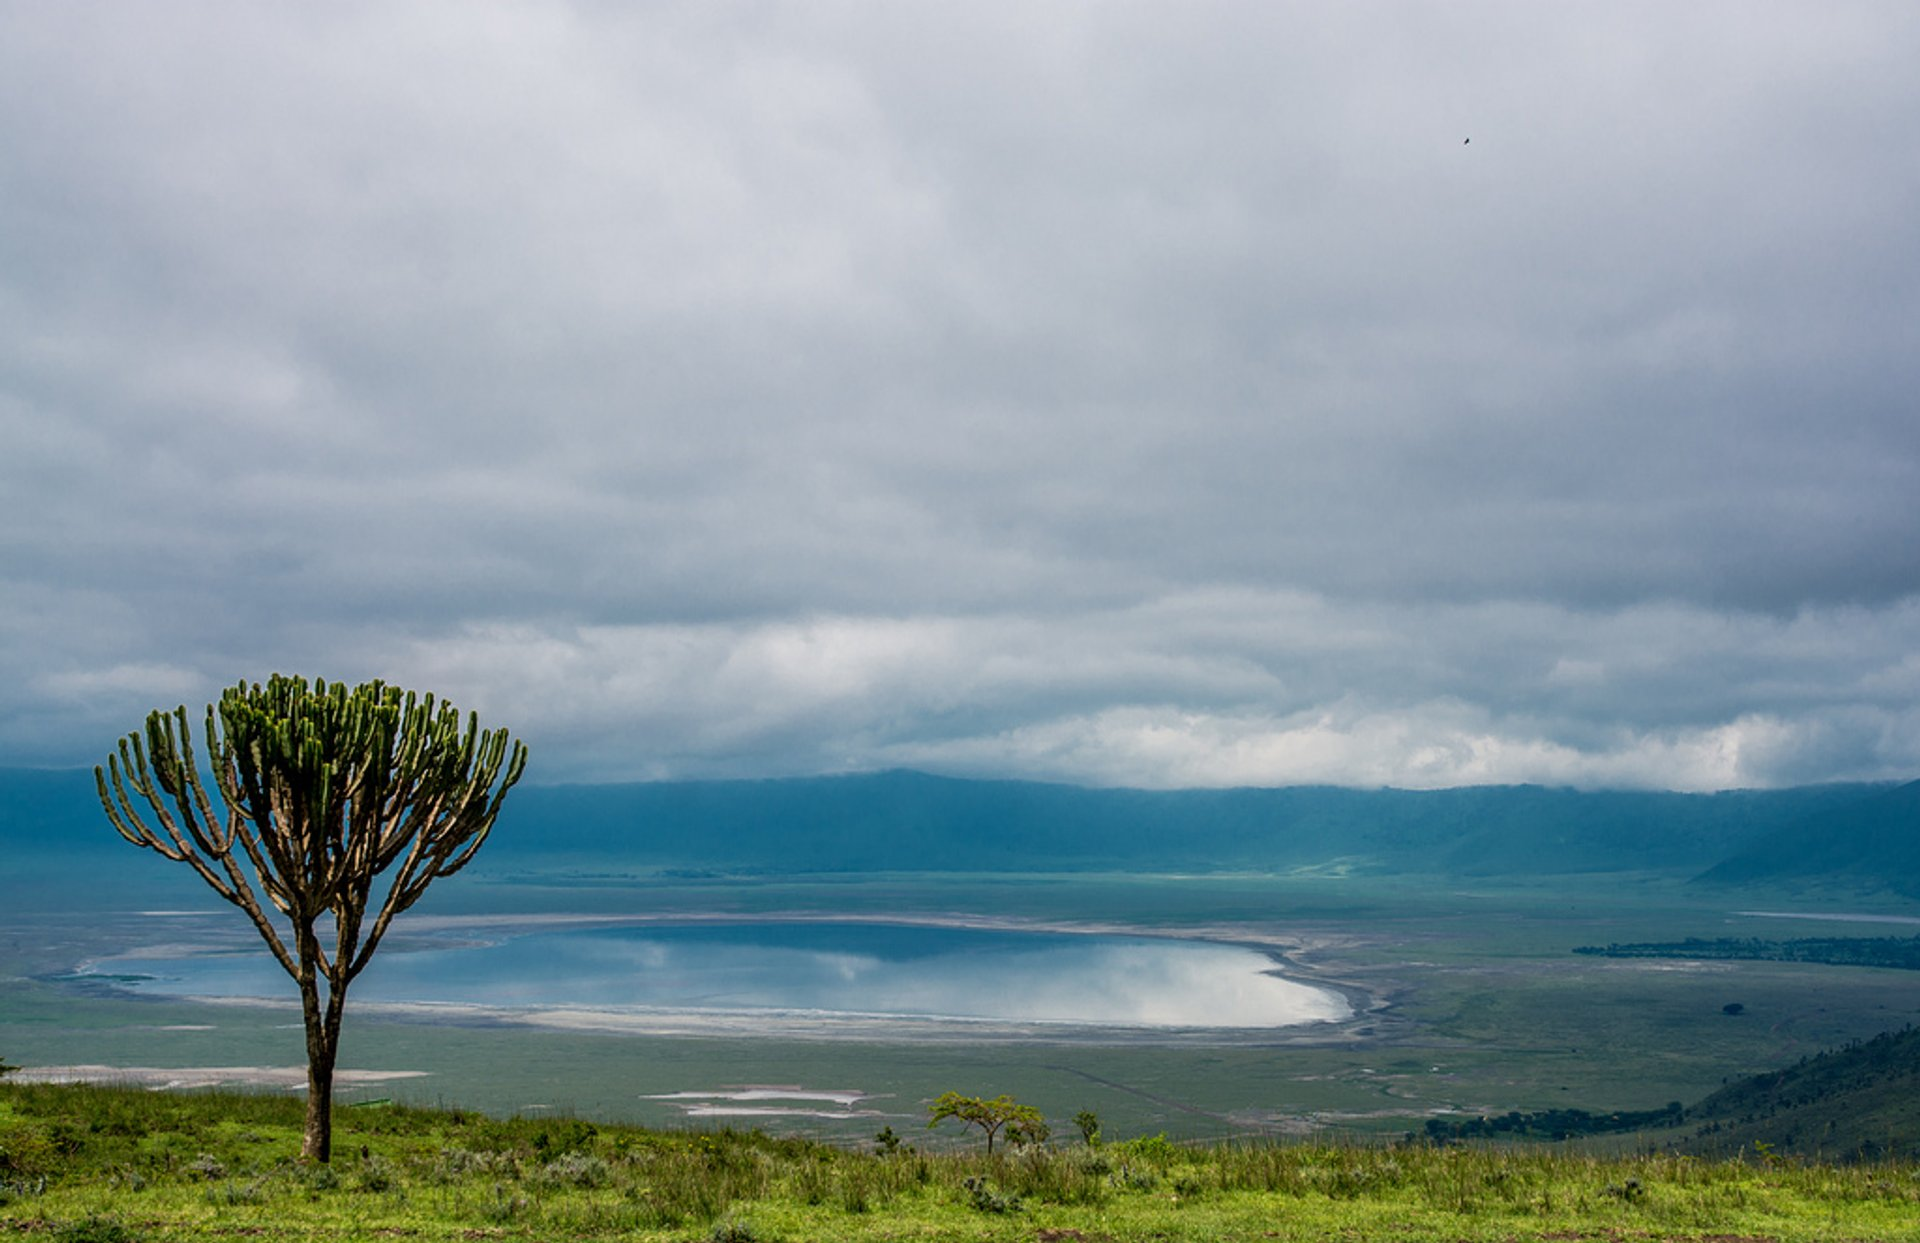 Ngorongoro Crater in Tanzania 2020 - Best Time